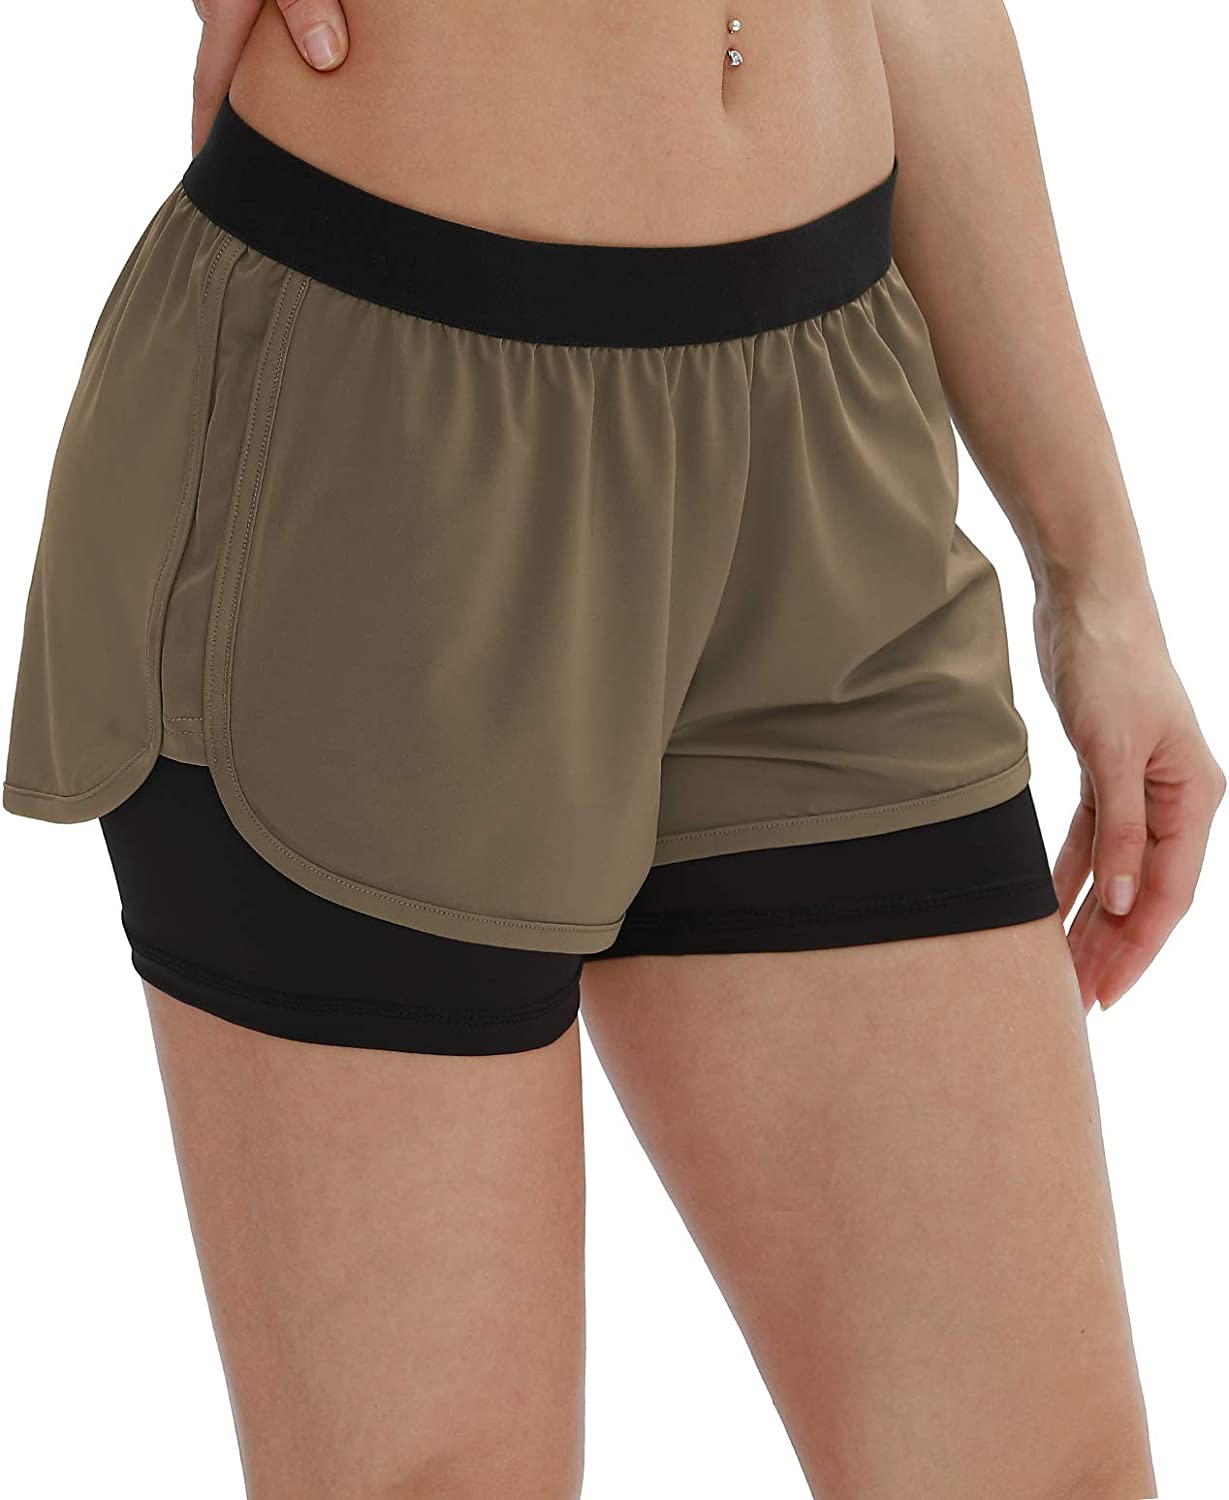 icyzone Womens 2 in 1 Running Sports Shorts Quick Dry Workout Jogging Pants Athletic Shorts